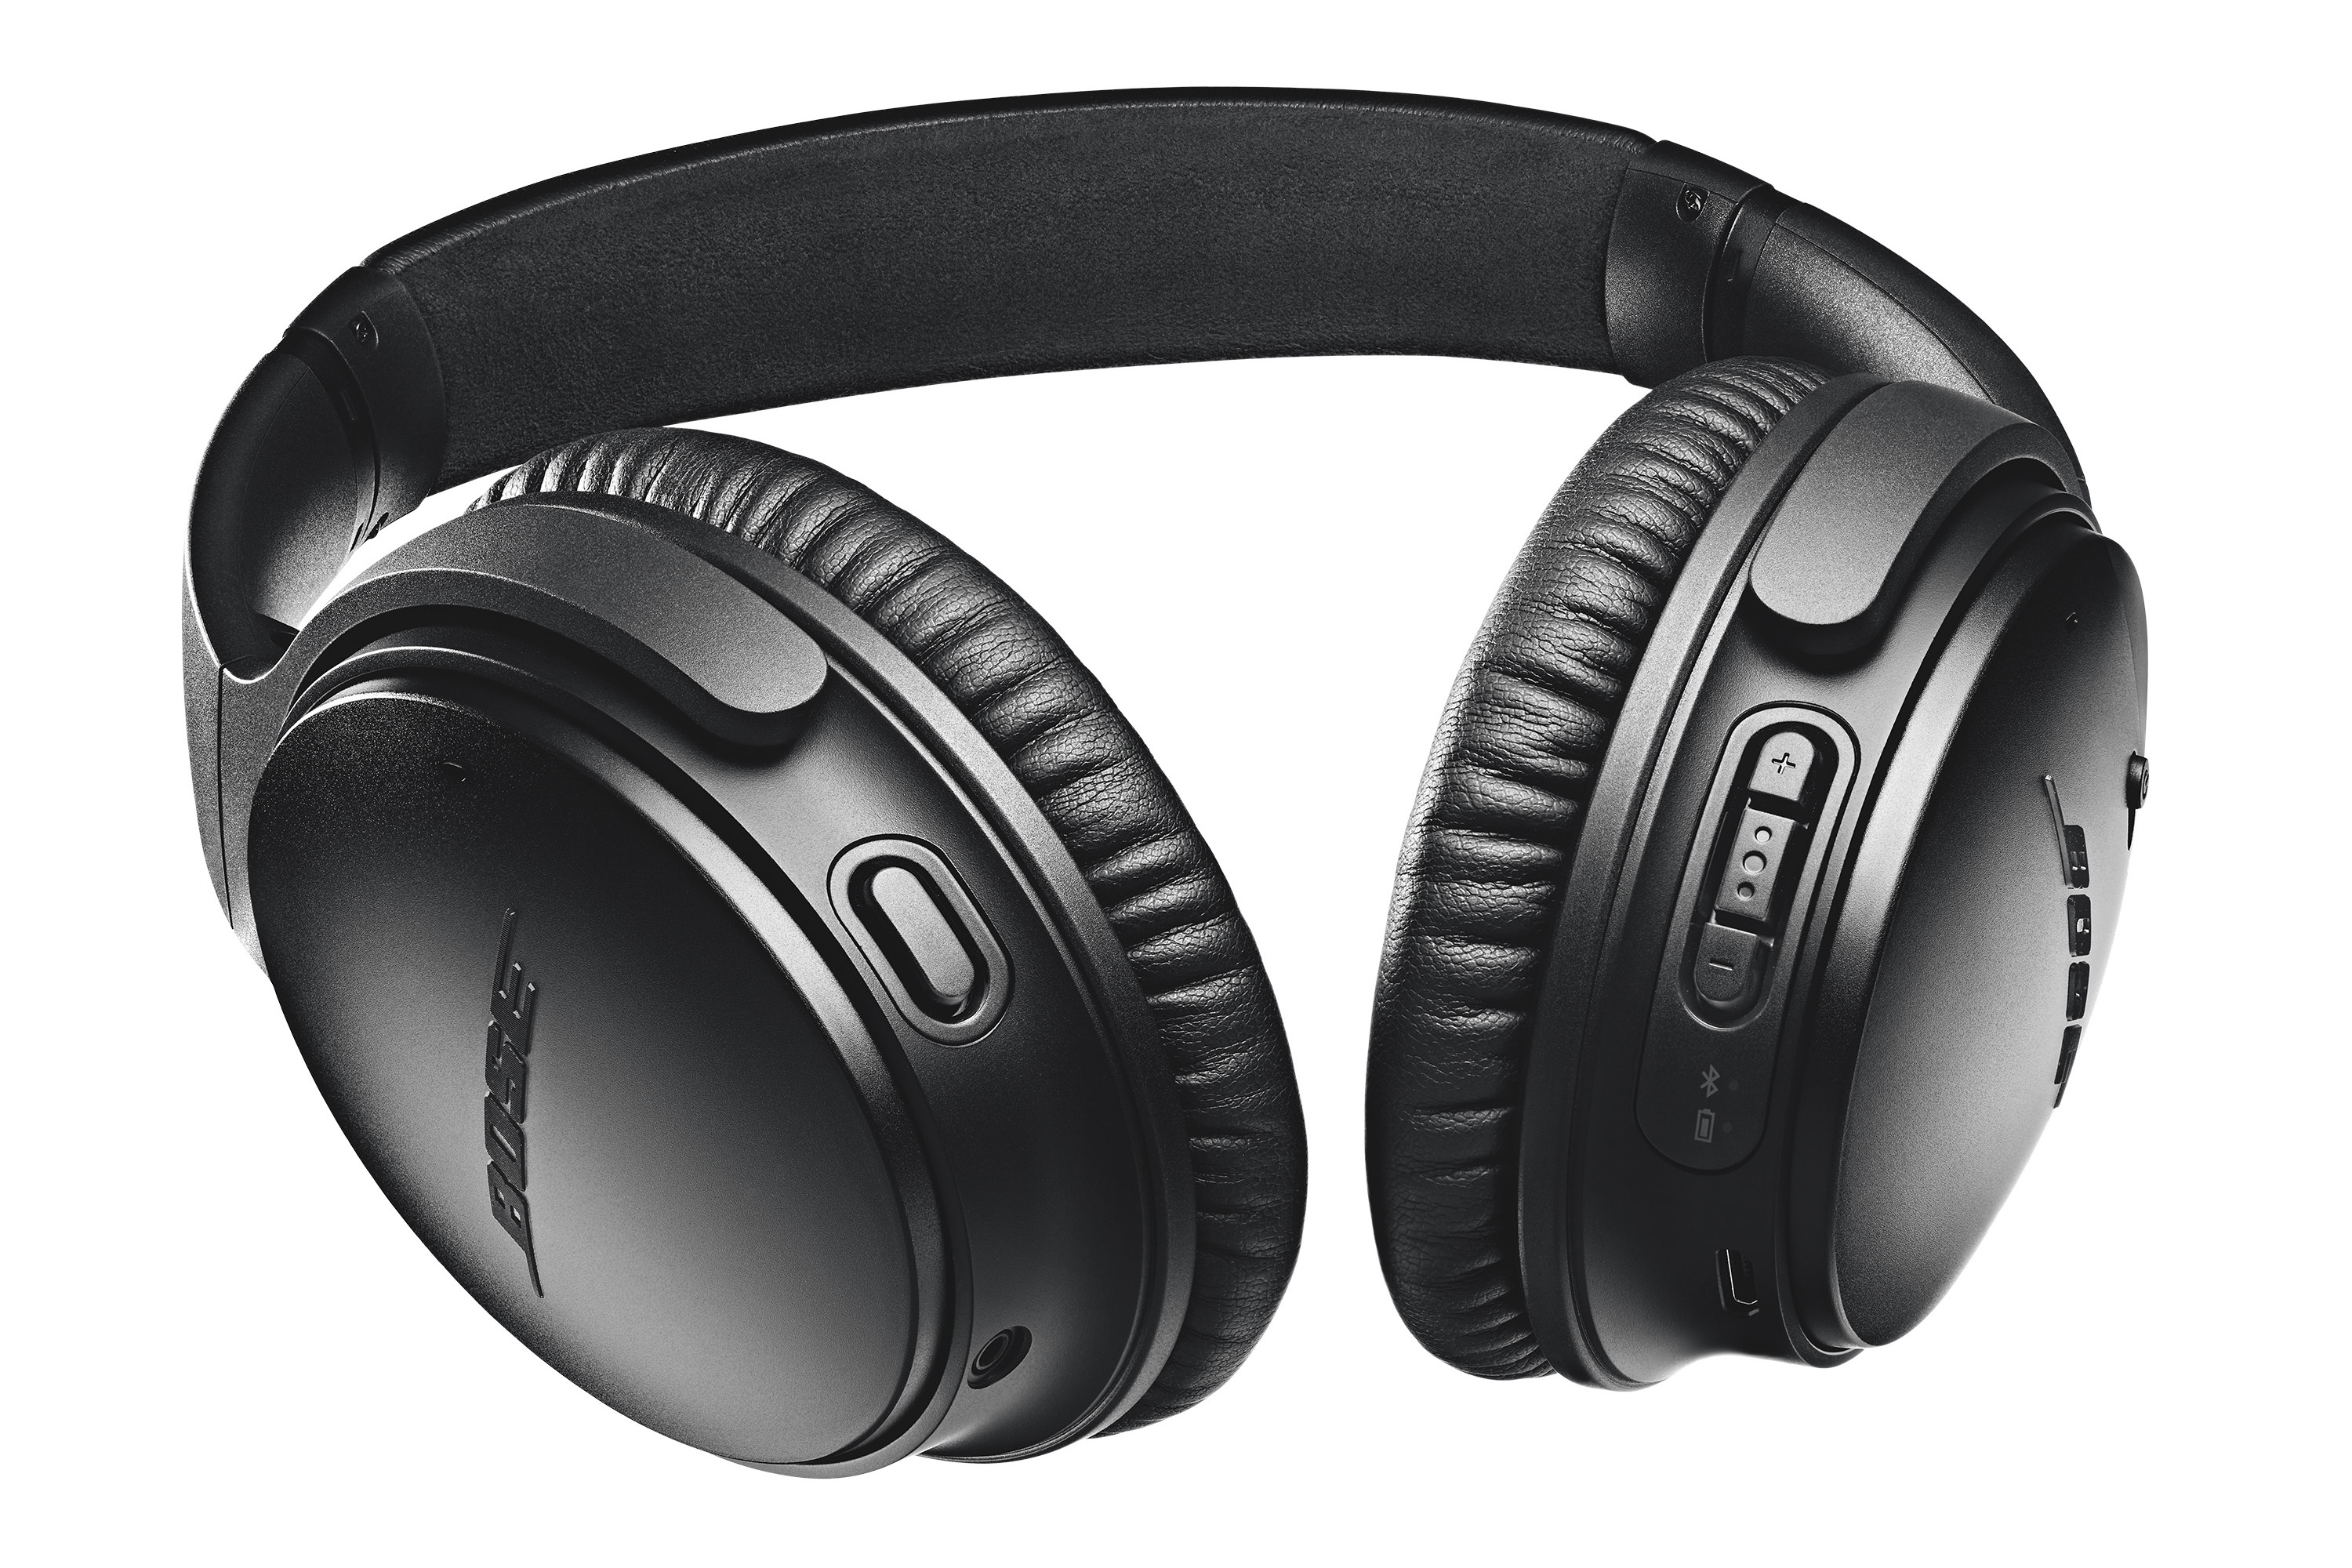 Bose QC35 II product Bose Updates Noise Cancelling Headphones With Google Assistant